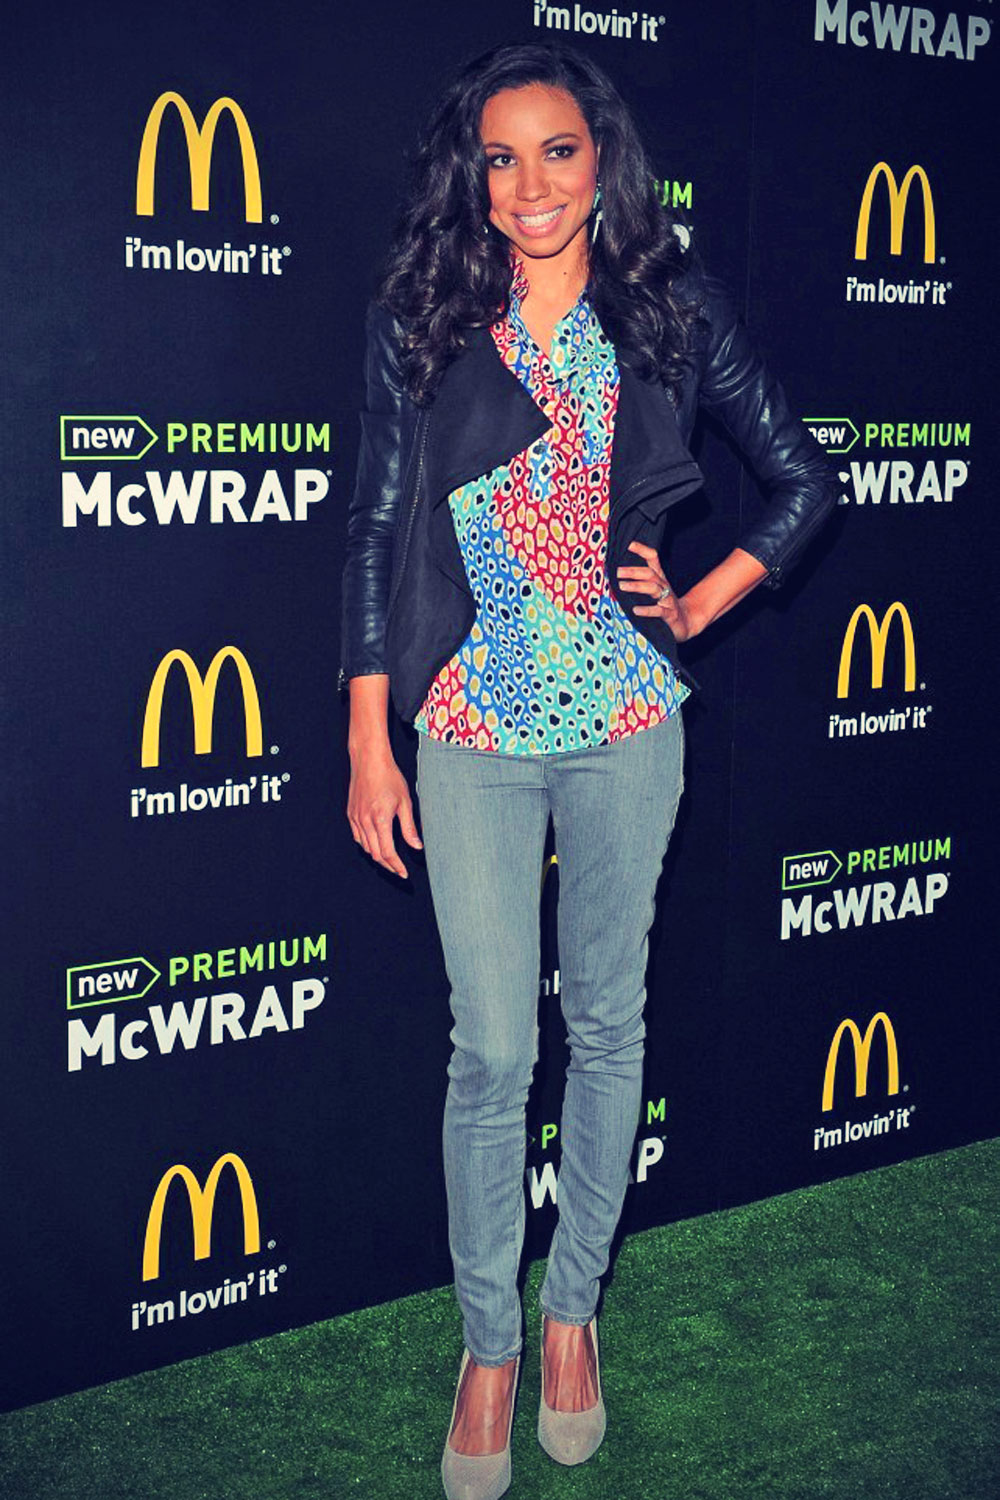 Jurnee Smollett attends the launch of McDonald's Premium McWrap